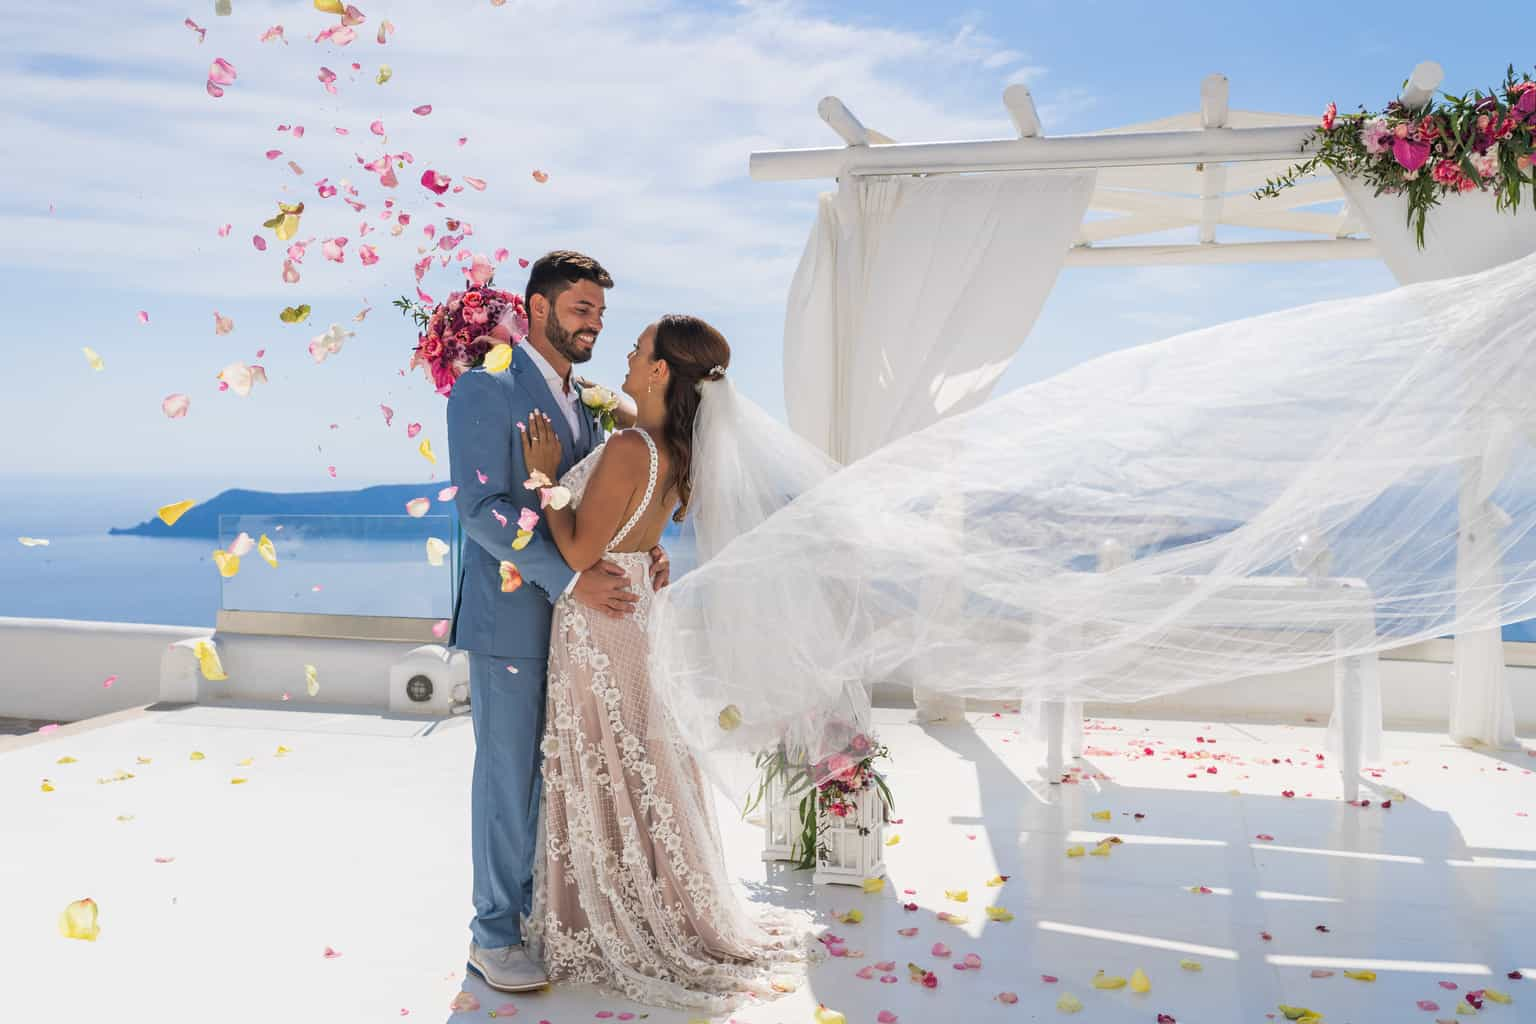 Destination-wedding-grecia-elopment-wedding-fotografia-life-click-studioLFC124of185